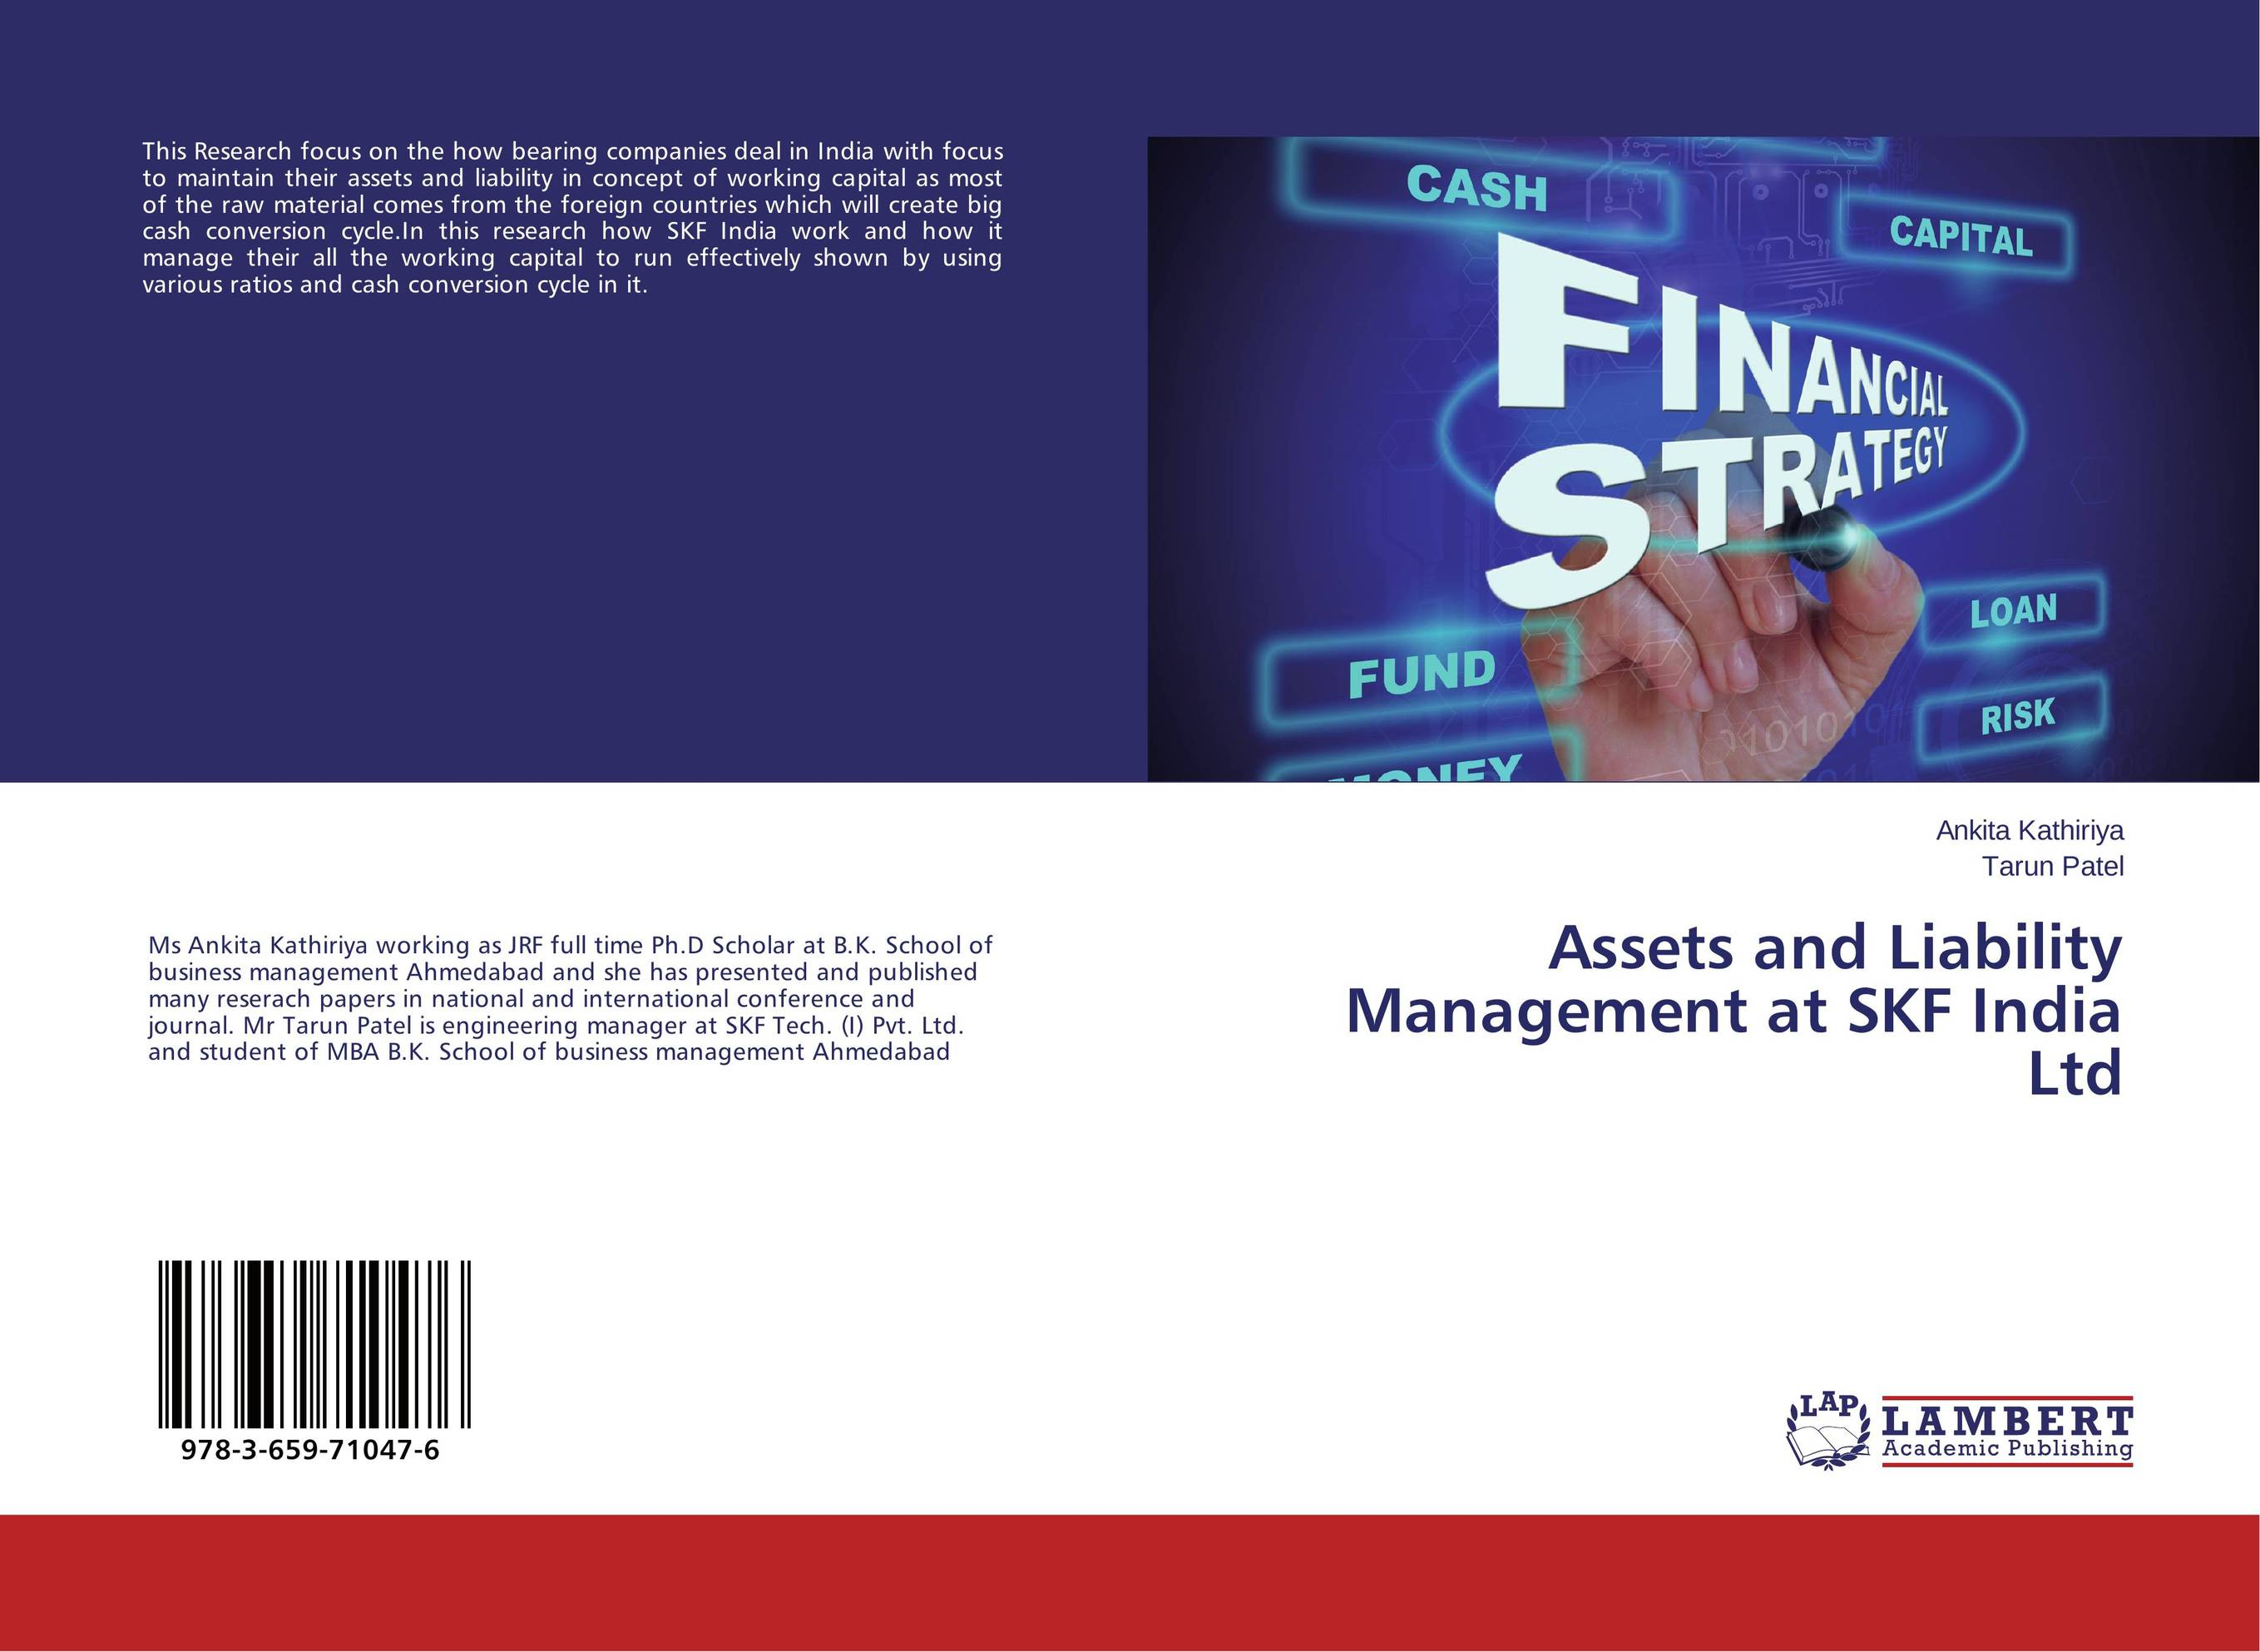 Assets and Liability Management at SKF India Ltd james sagner working capital management applications and case studies